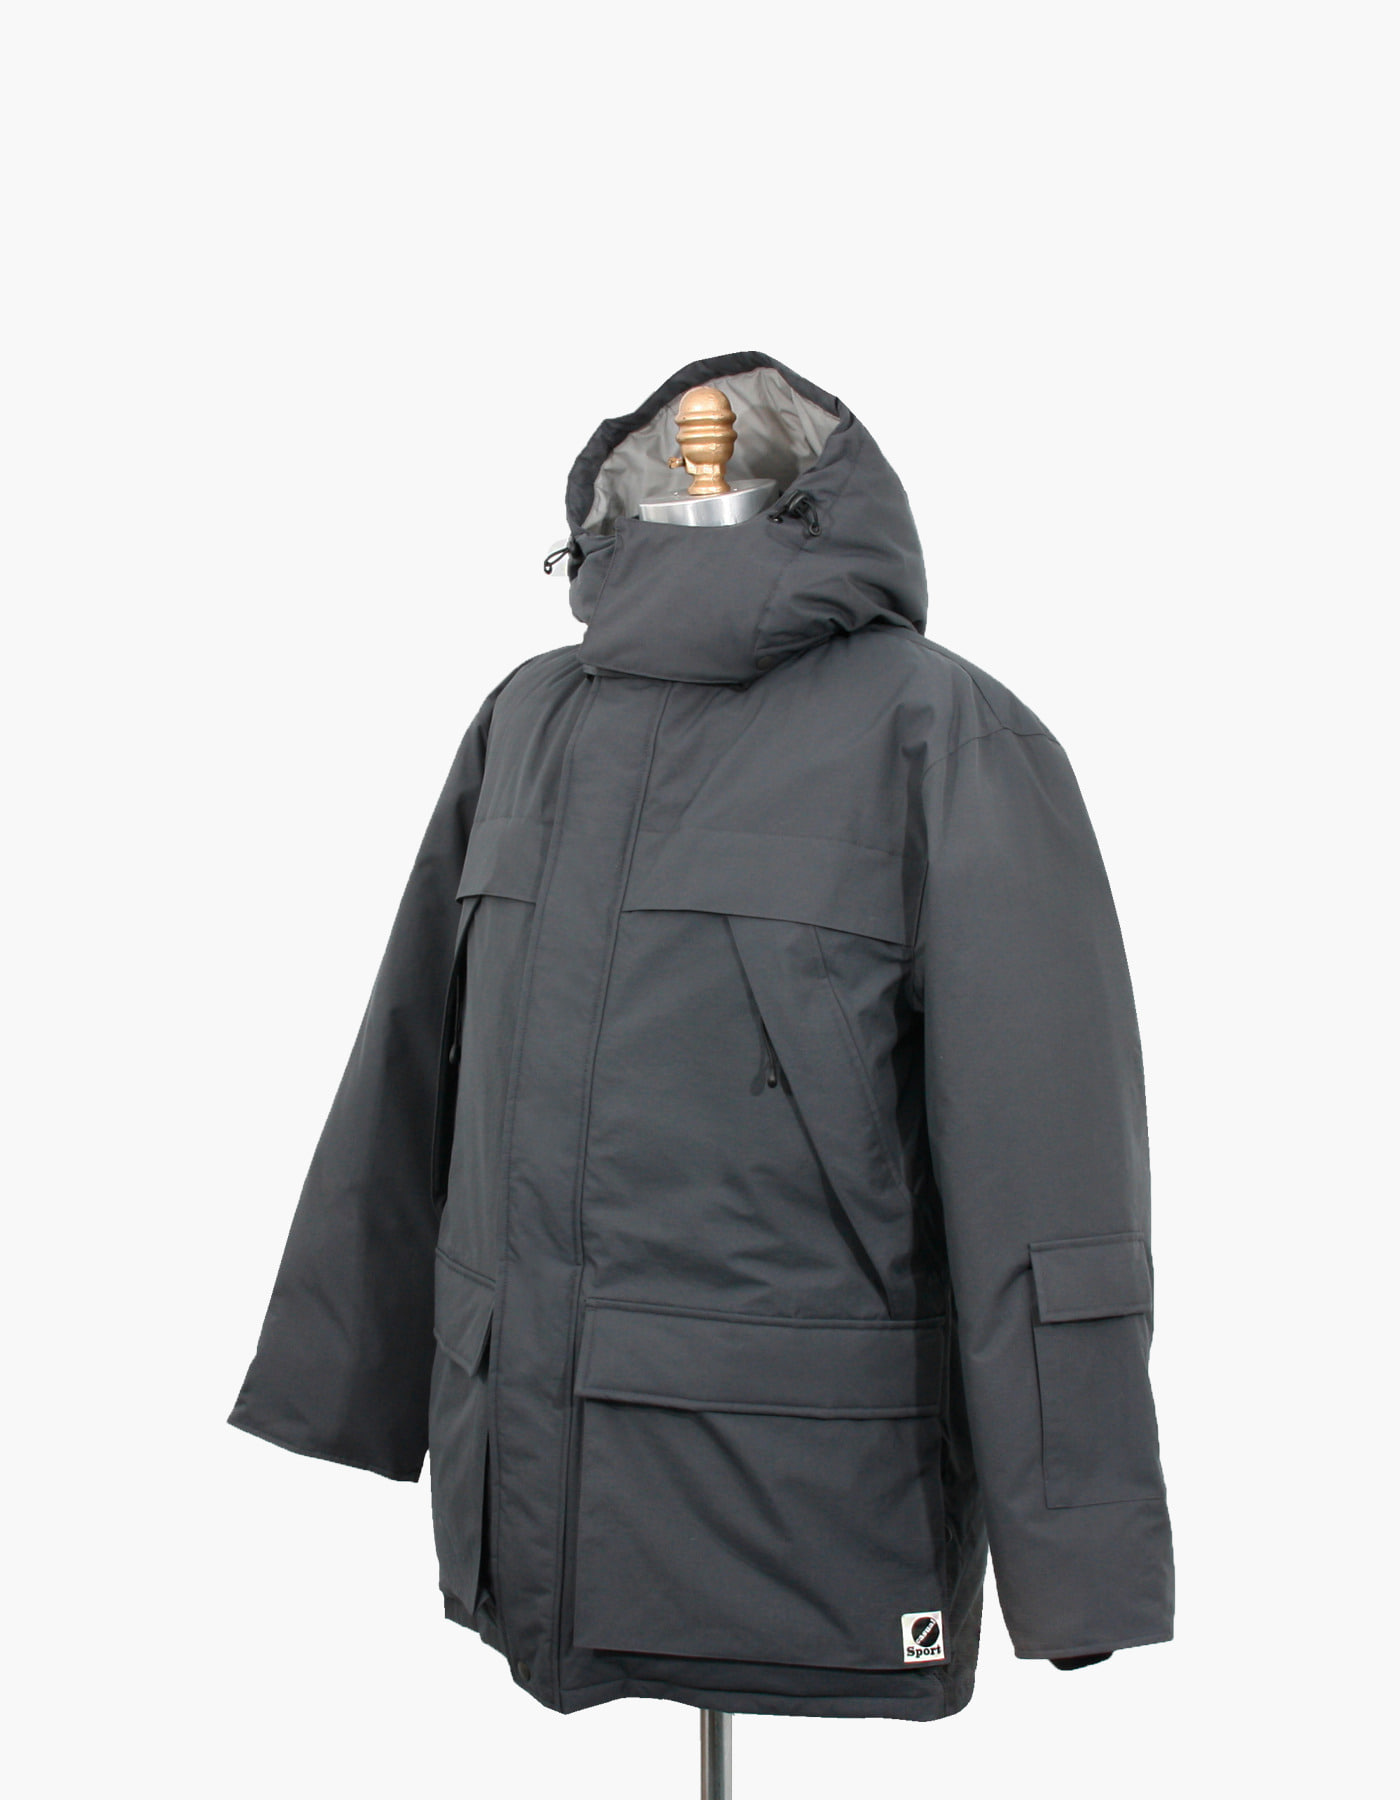 MOUNTAIN GOOSE DOWN PARKA / CHARCOAL